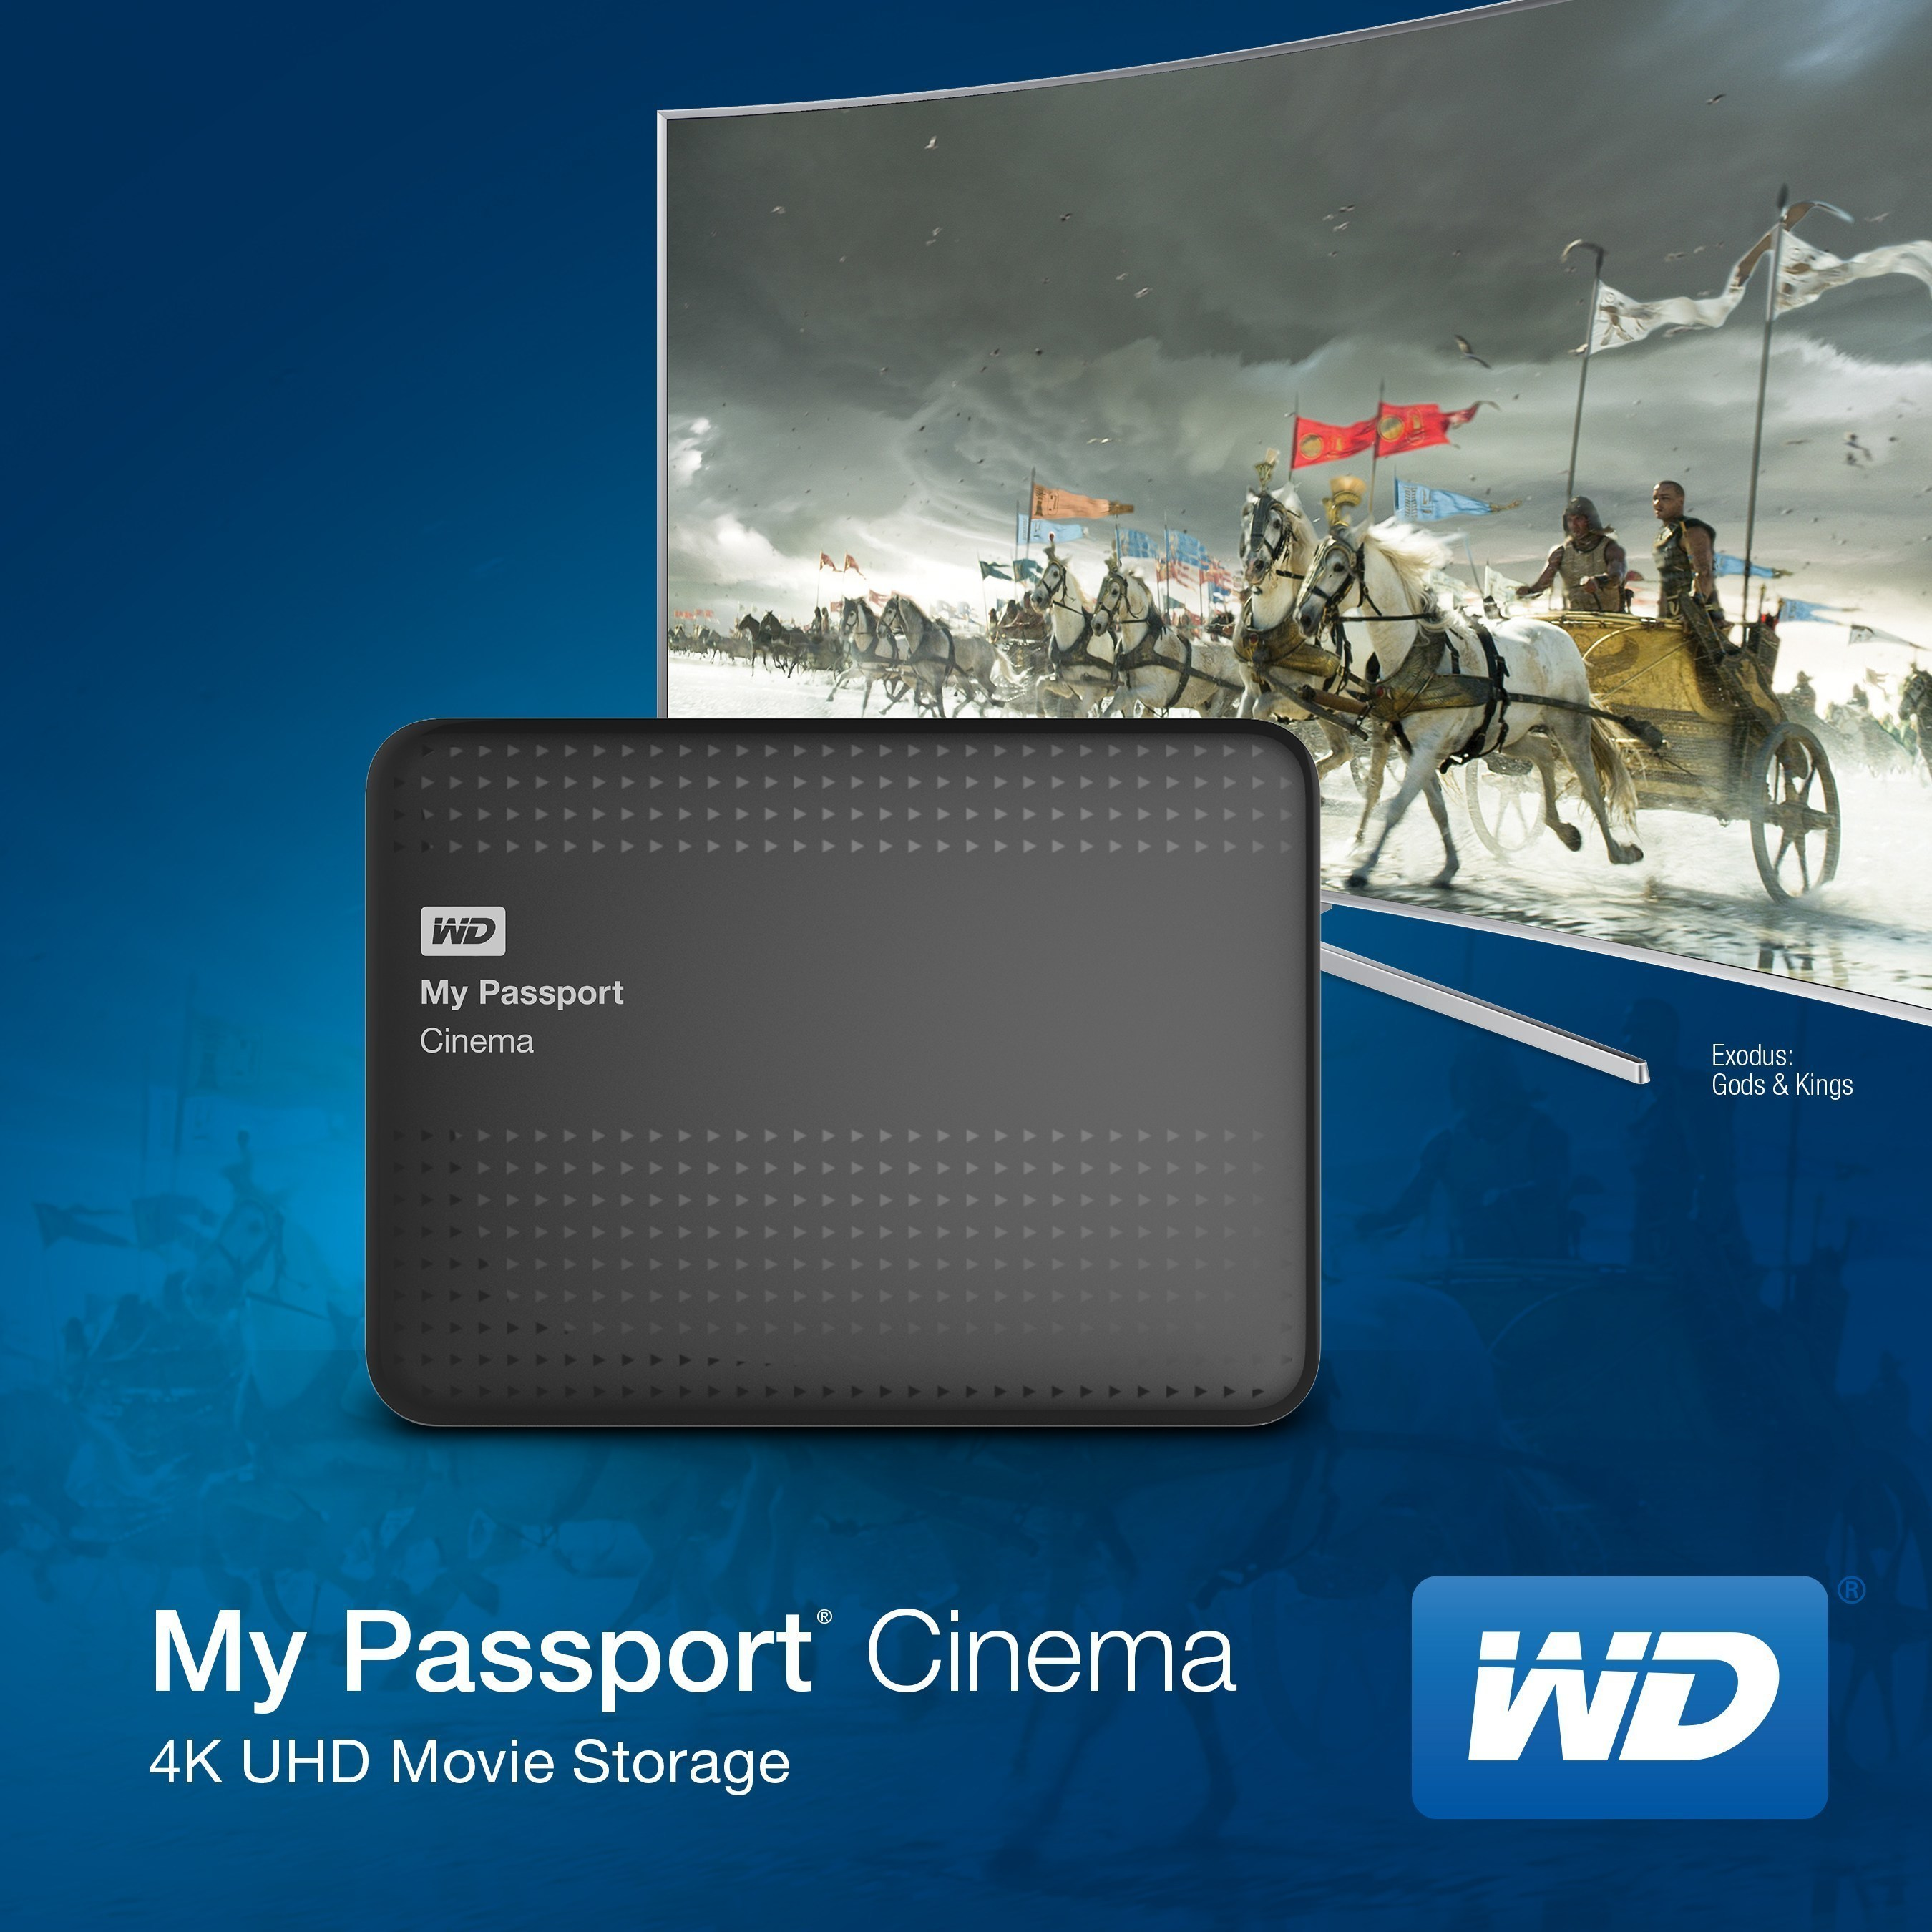 WD Delivers Ultra HD Movie Content For New Generation Of Samsung TVs